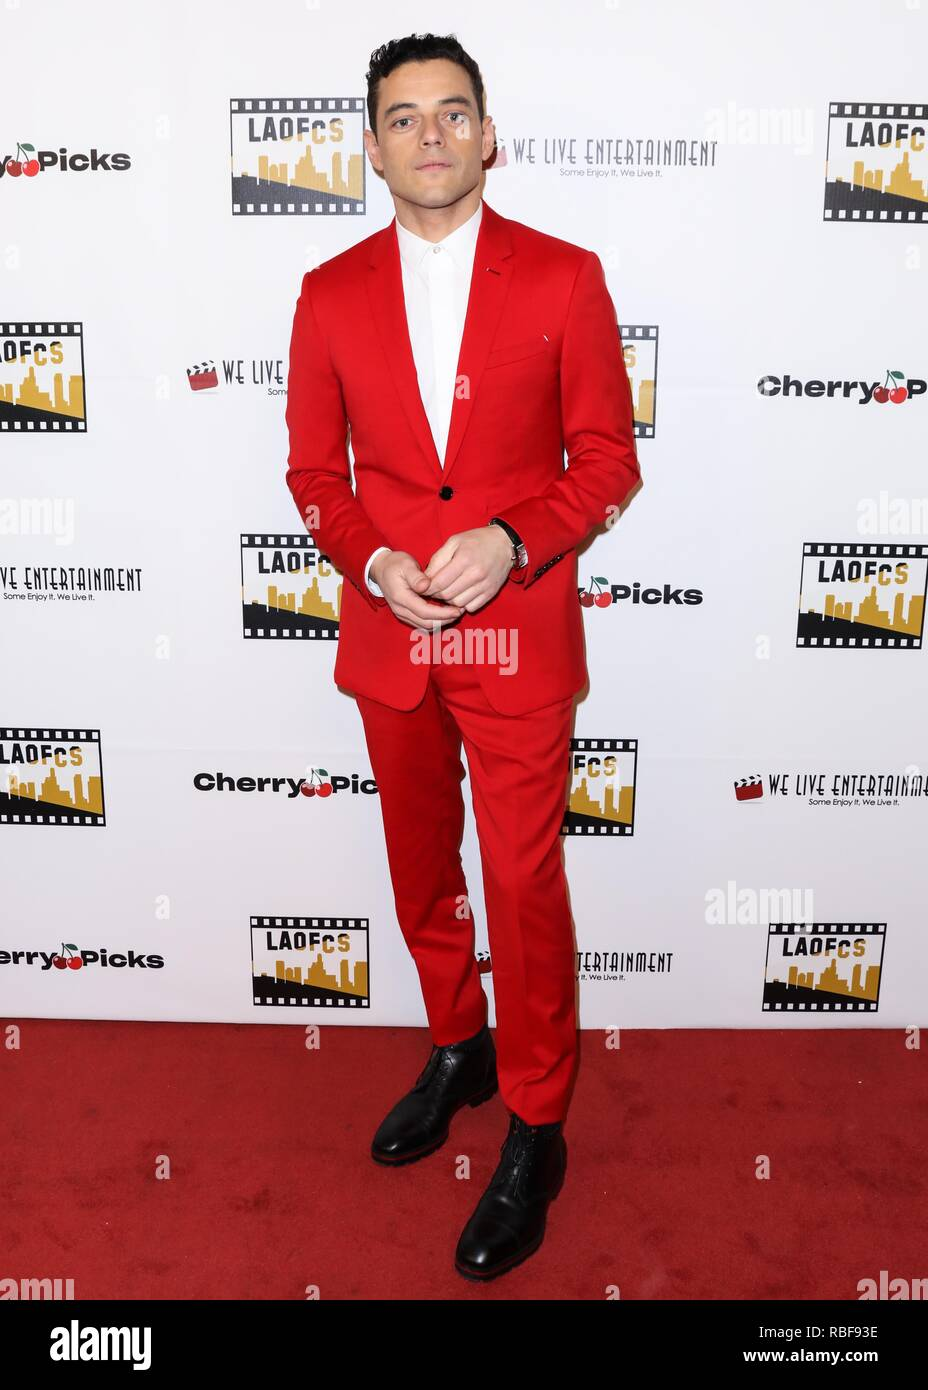 Los Angeles, California, USA. 9th January, 2019. Actor Rami Malek arrives at the 2nd Annual Los Angeles Online Film Critics Society Award Ceremony held at the Taglyan Cultural Complex on January 9, 2019 in Hollywood, Los Angeles, California, United States. (Photo by David Acosta/Image Press Agency) Credit: Image Press Agency/Alamy Live News - Stock Image